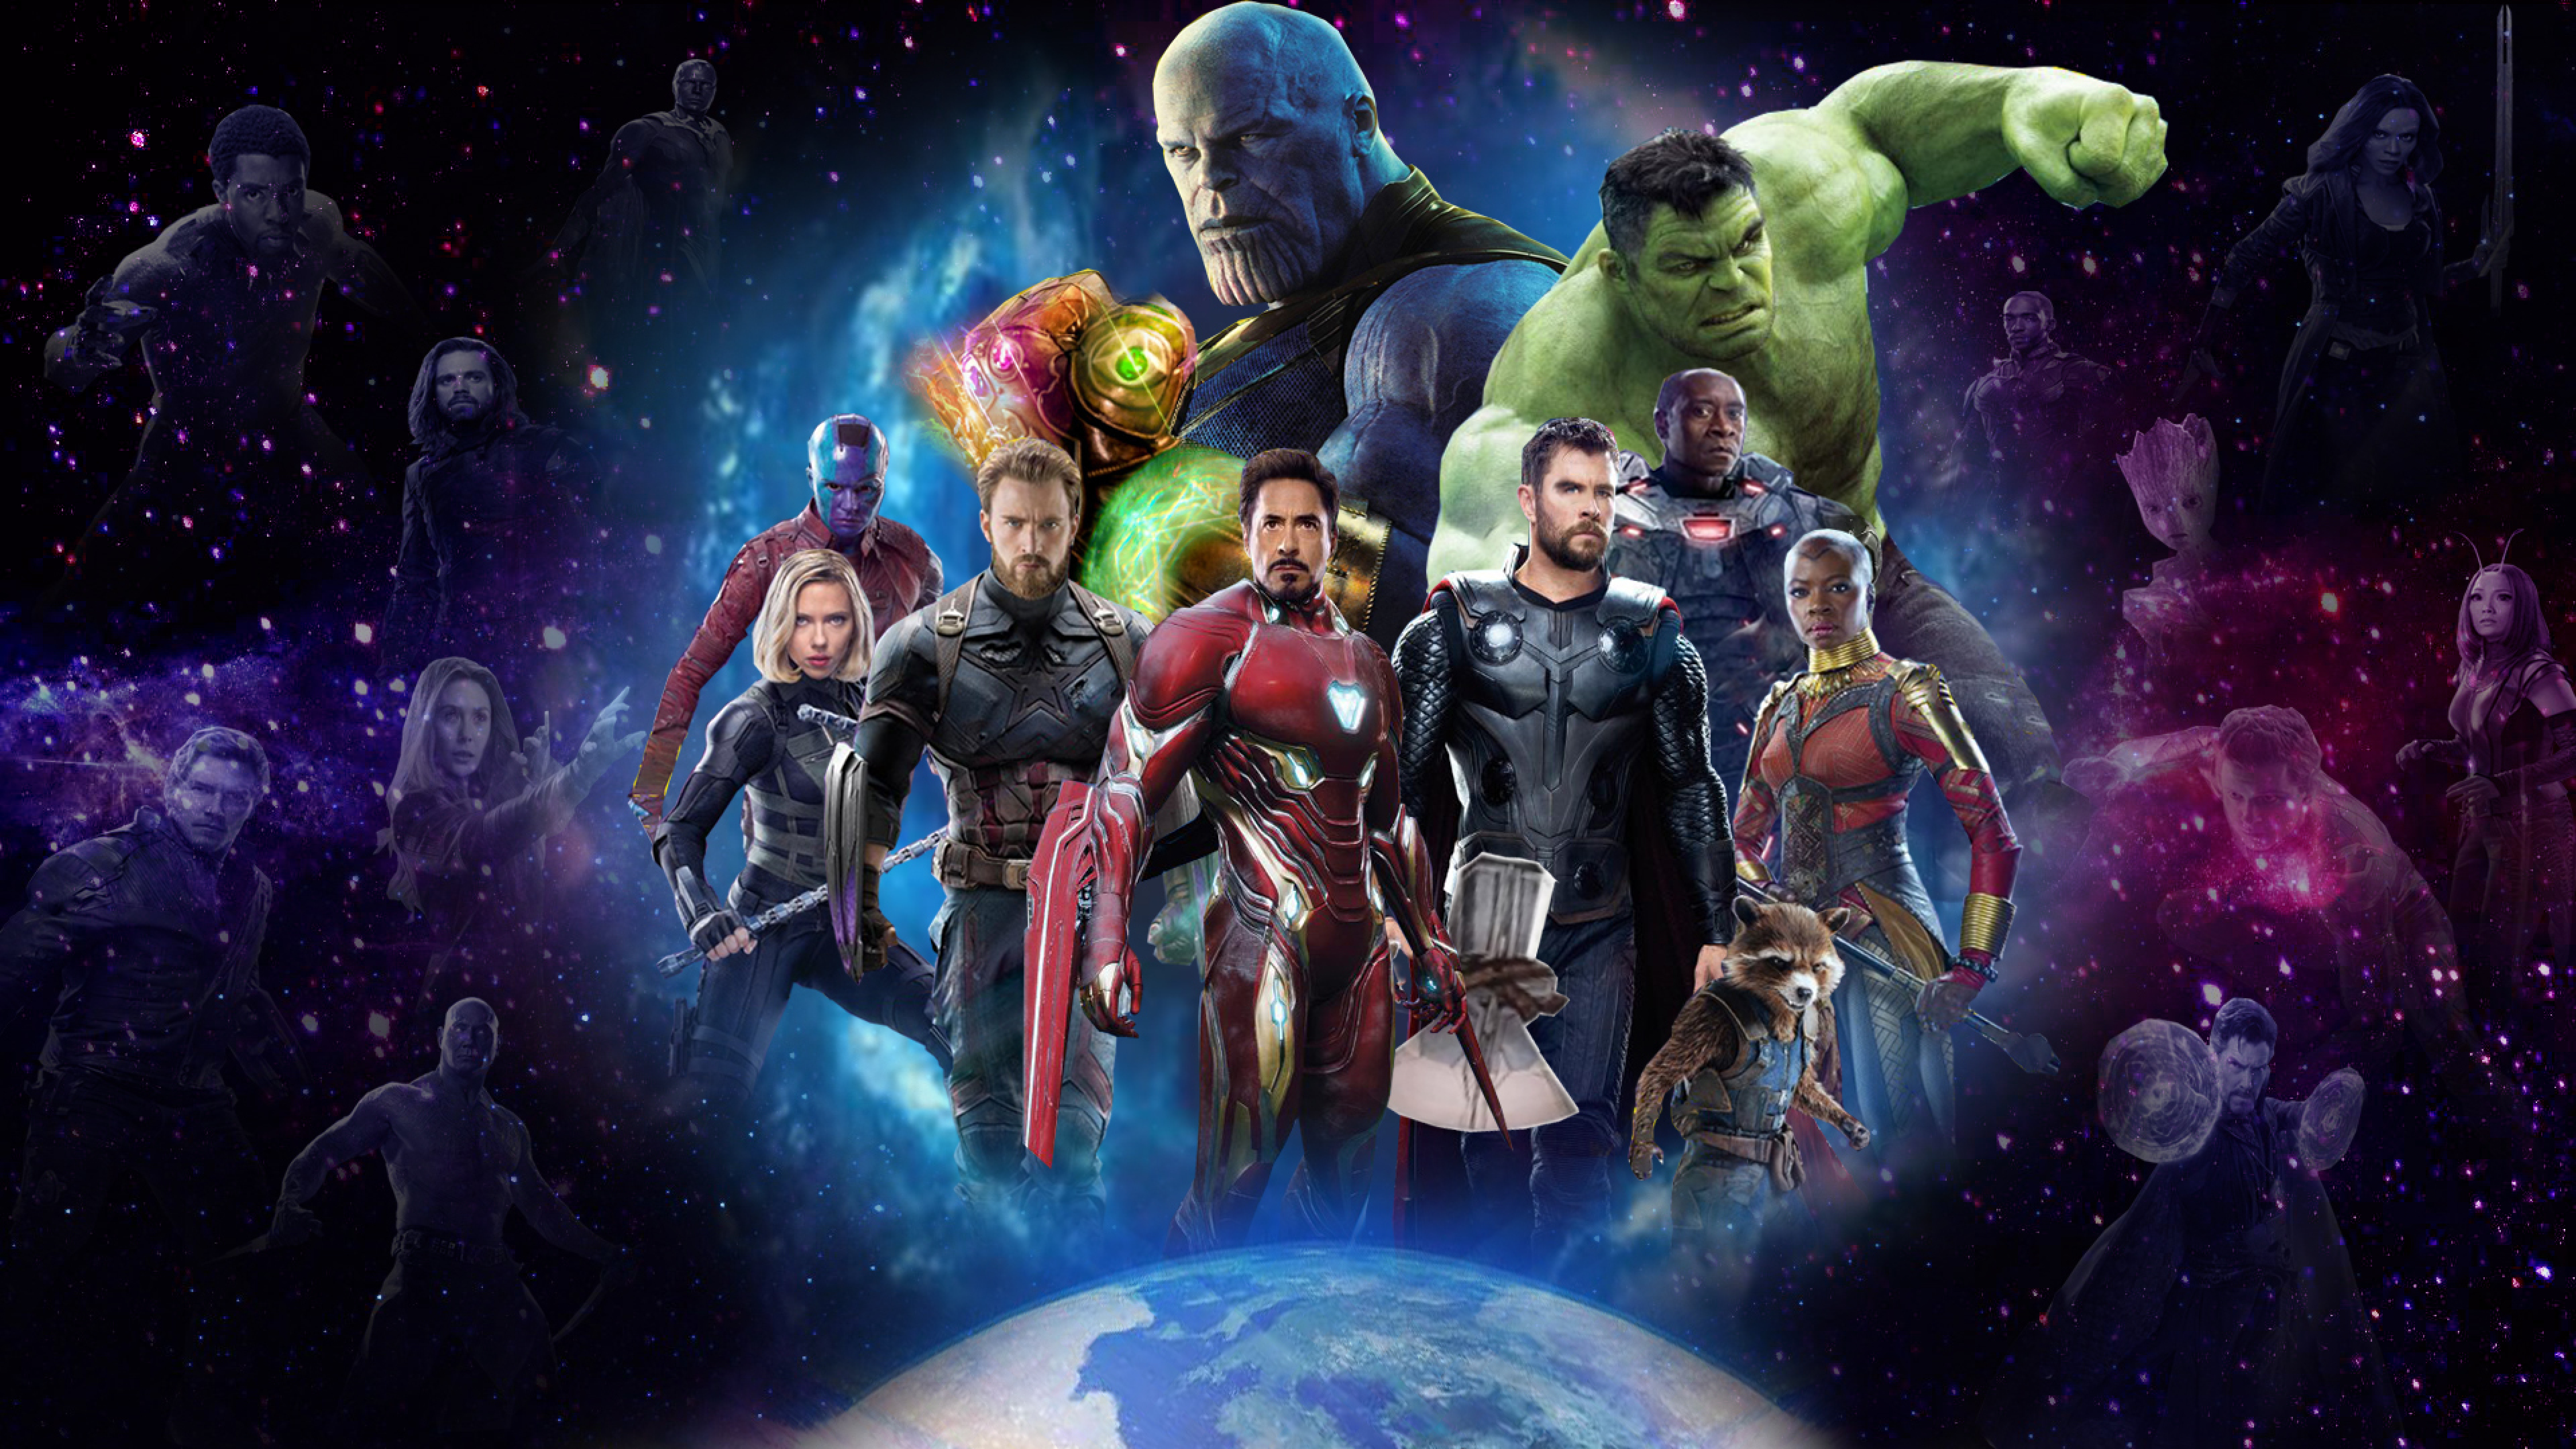 Download avengers 4 artwork from infinity war 3840x2160 - Images avengers ...